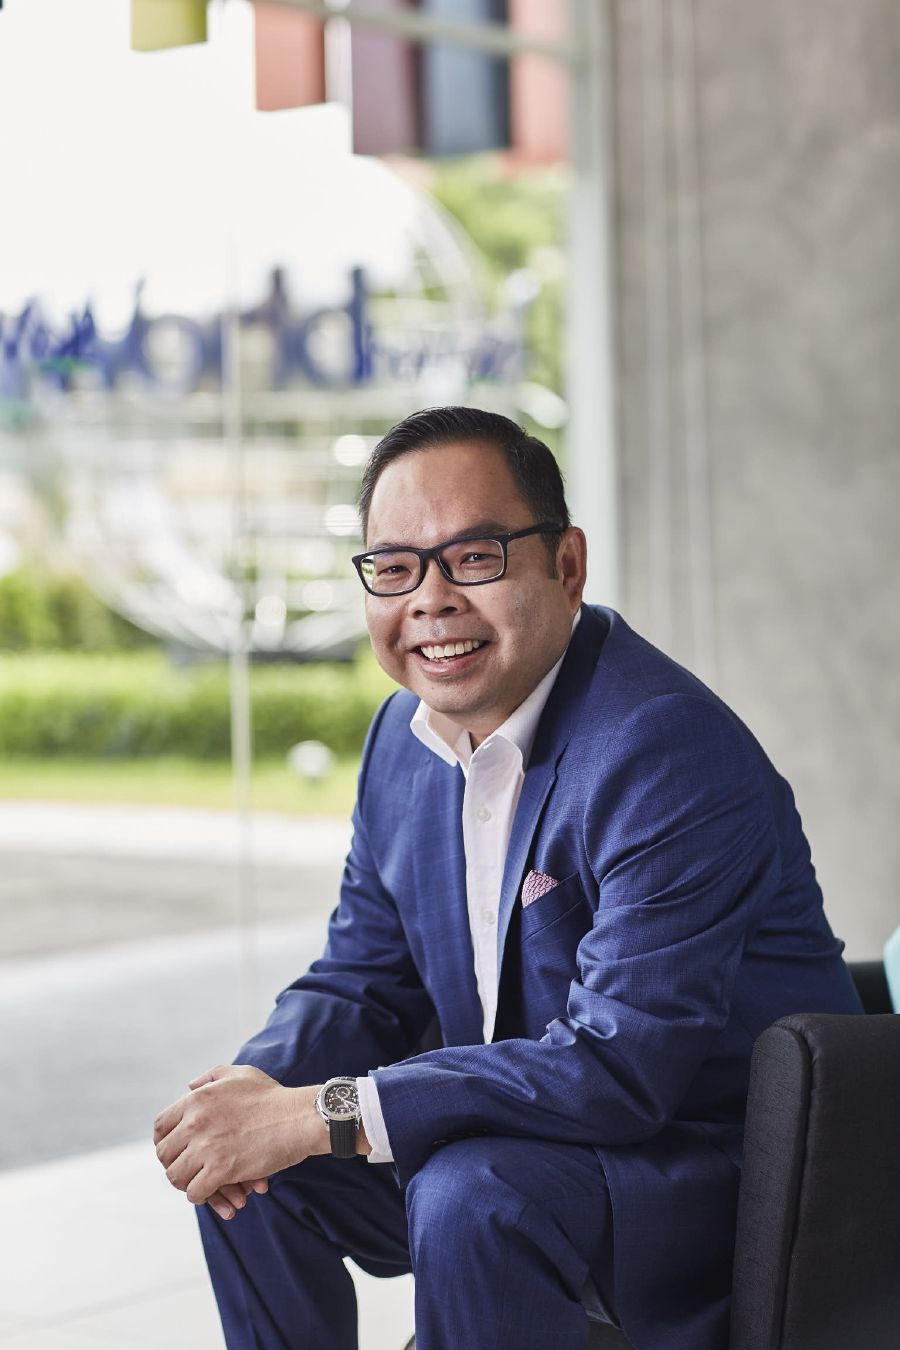 SkyWorld founder and group managing director Datuk Ng Thien Phing said despite being a relatively young and emerging developer, the company is always on the lookout for innovative funding.